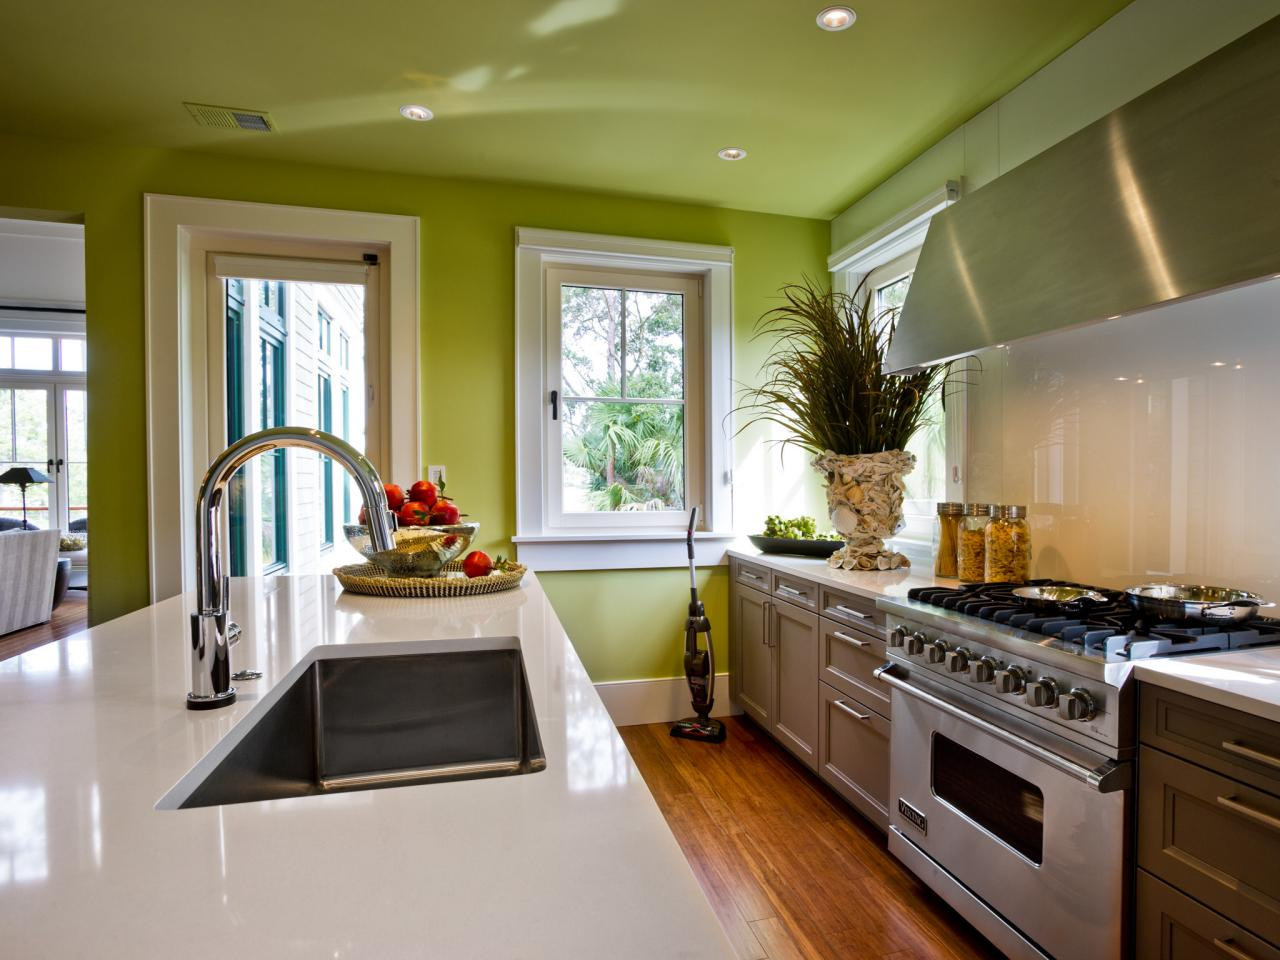 Paint colors for kitchens pictures ideas tips from for Kitchen colors with white cabinets with papier peints design